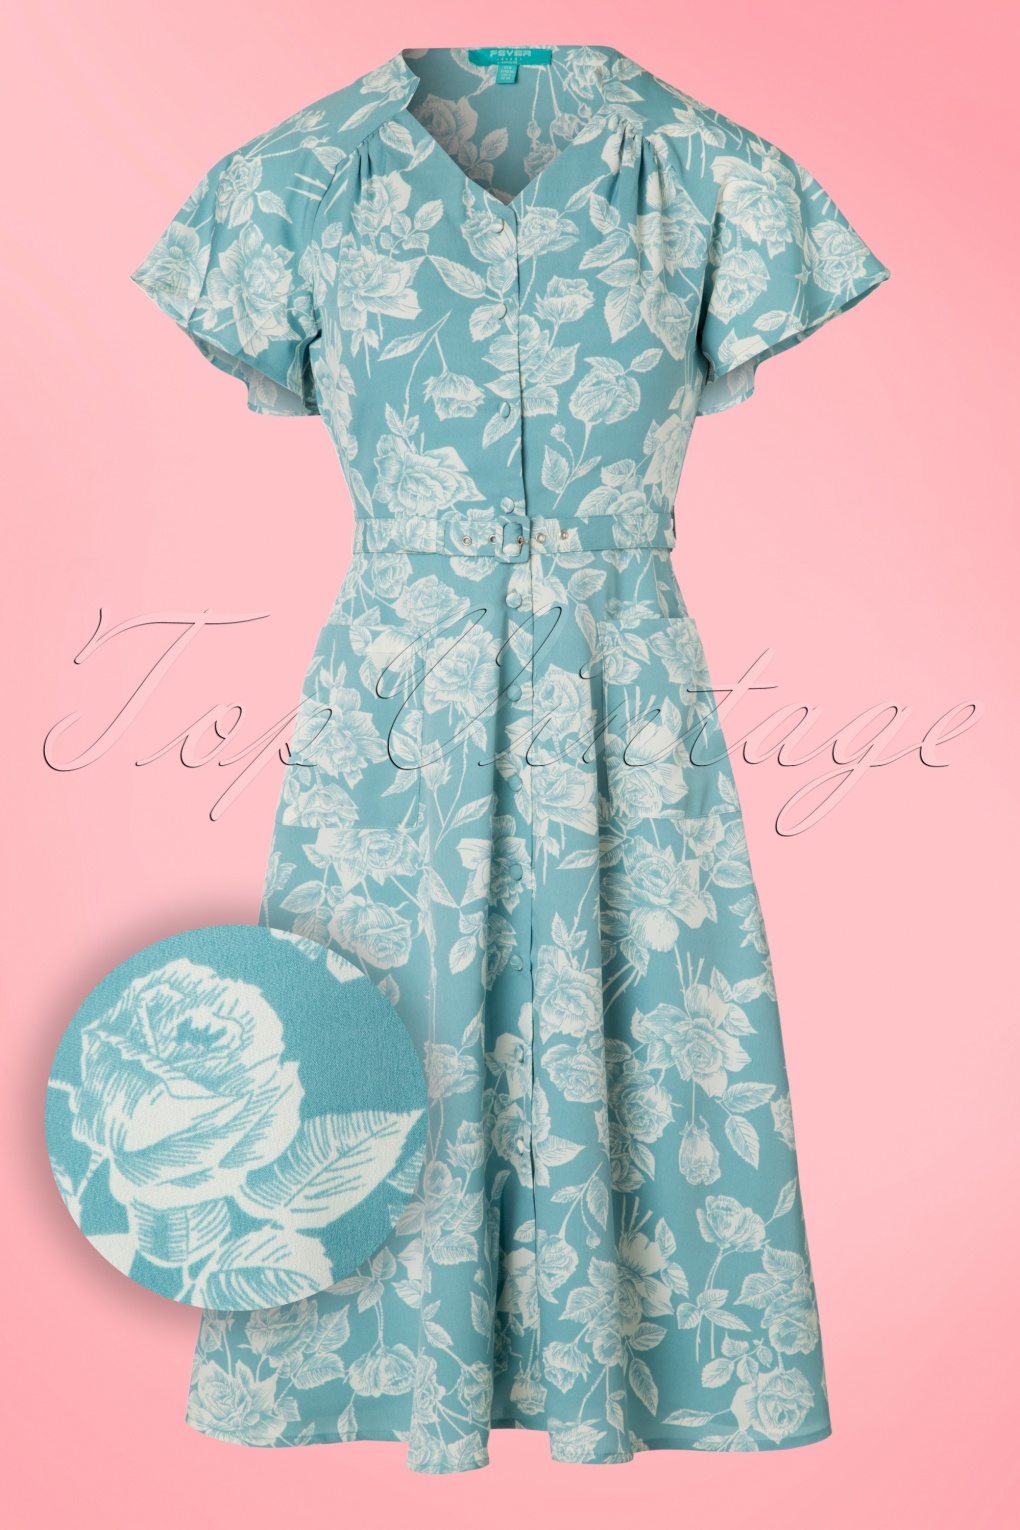 1940s Day Dresses 40s Darla Roses Swing Dress in Antique Blue £84.55 AT vintagedancer.com